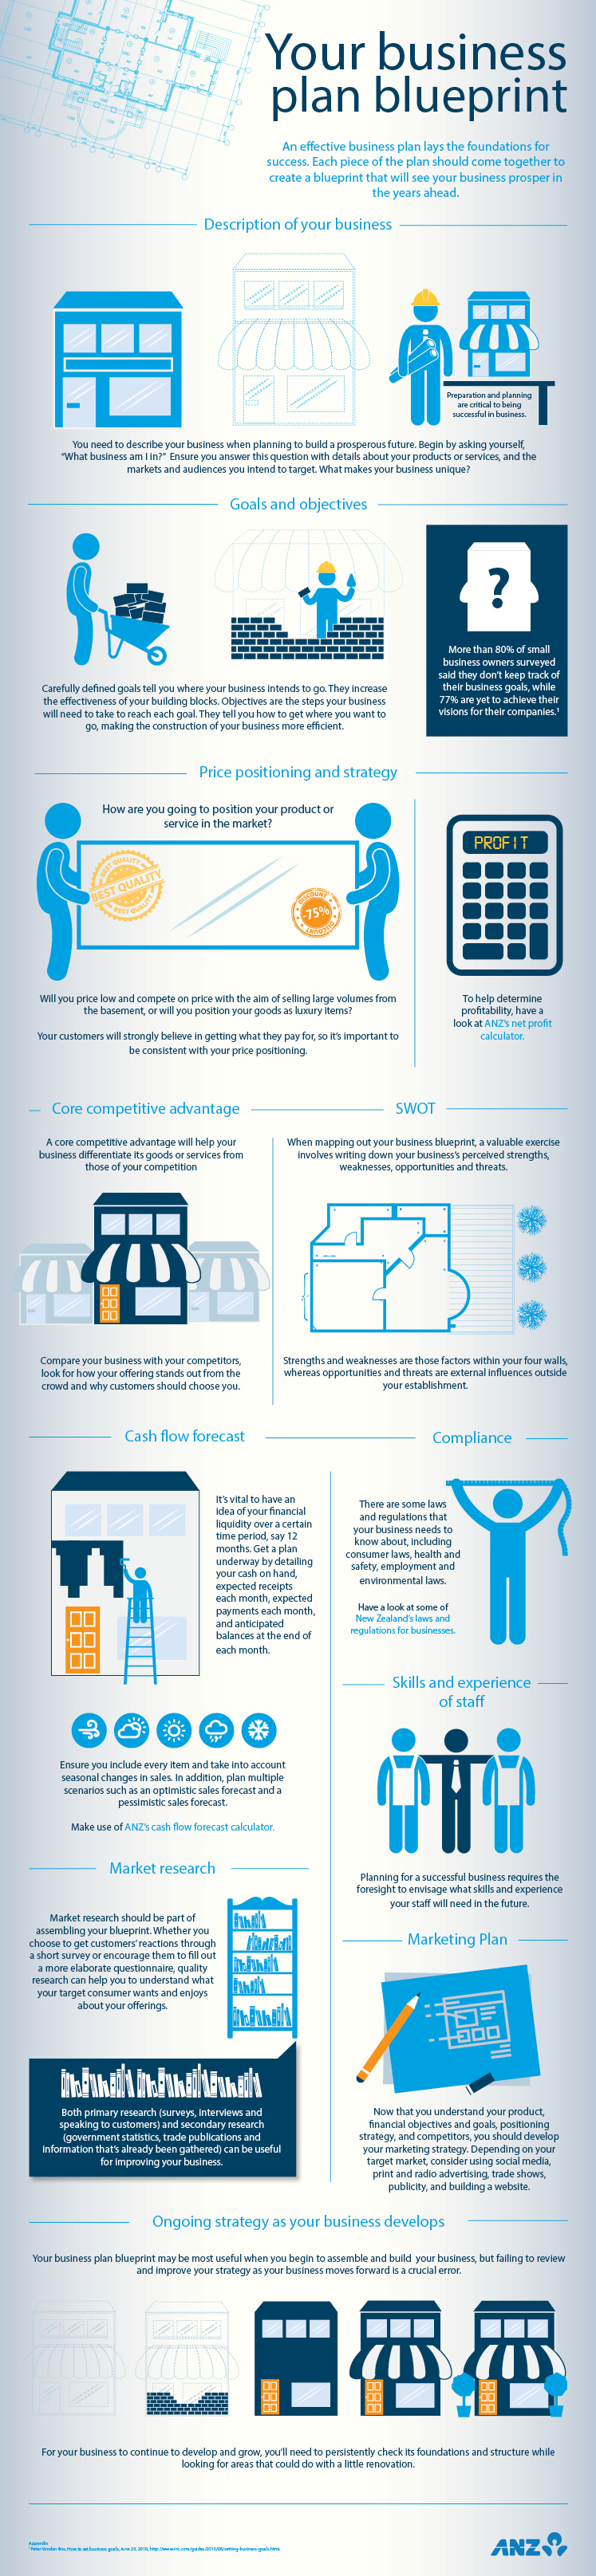 Business Plan Blueprint Business Infographic Business Planning